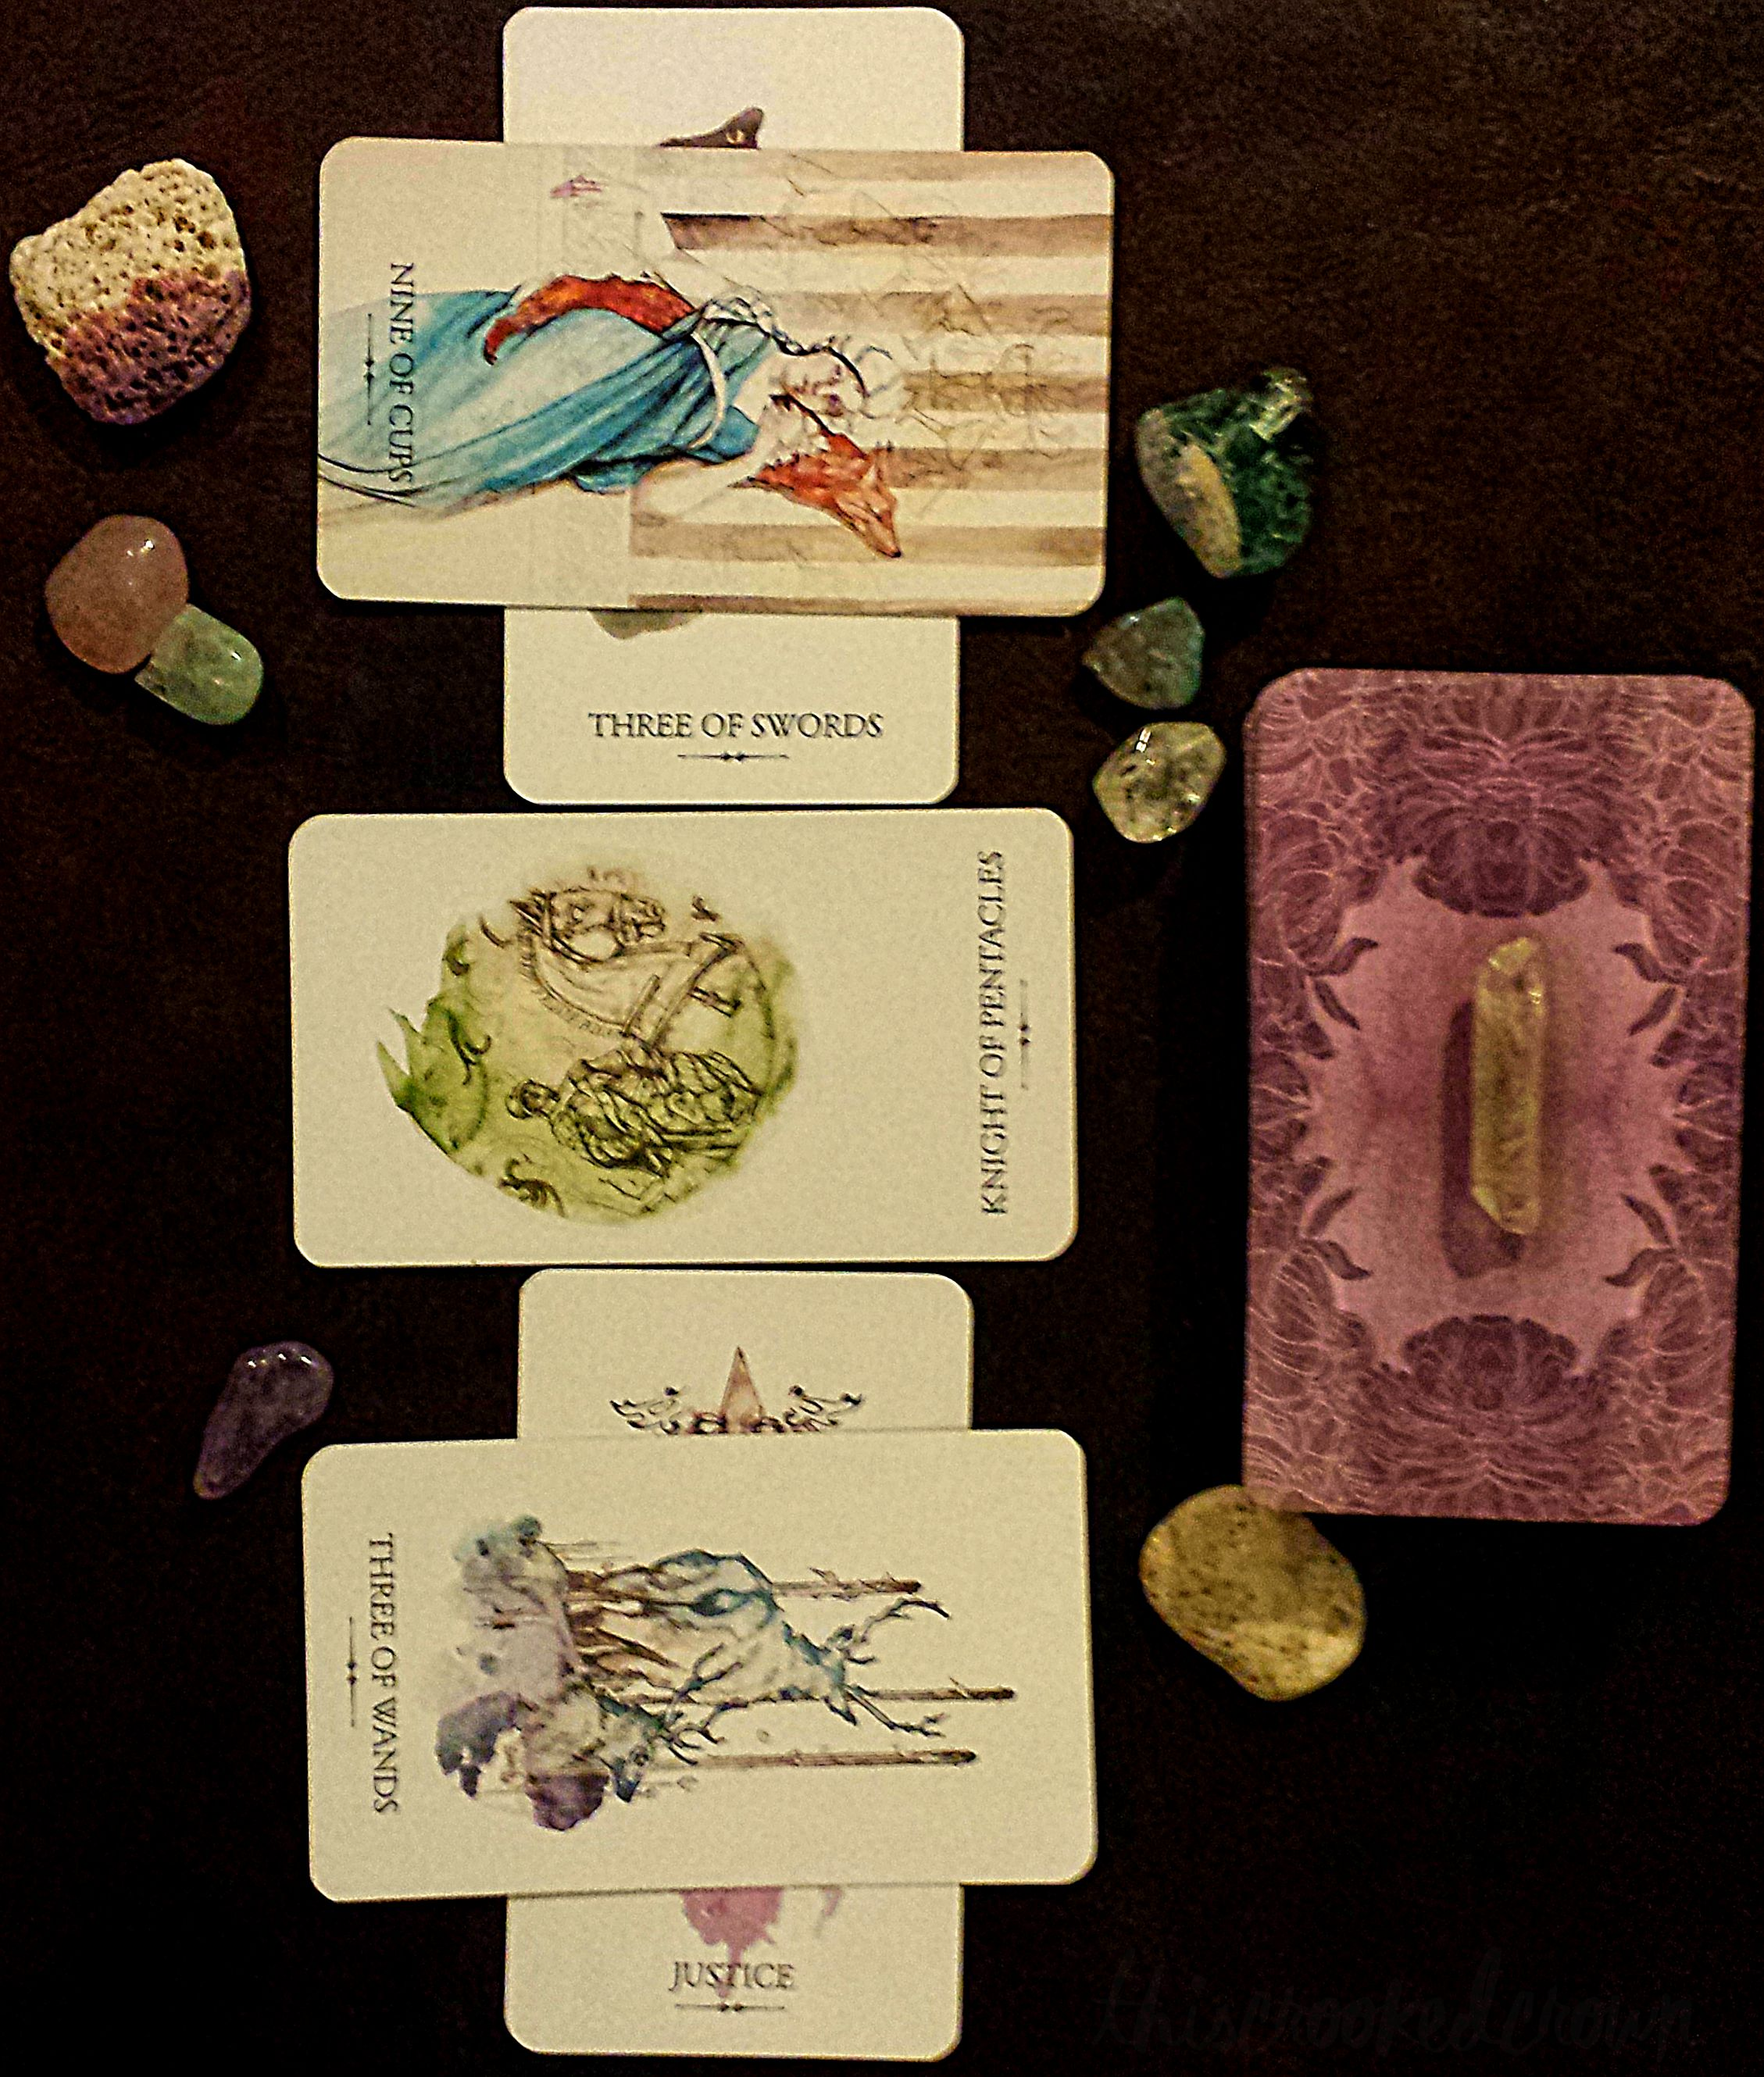 strength and weakness your strengths and weaknesses defined your strengths and weaknesses defined intuitive psychic tarot oracle card divination